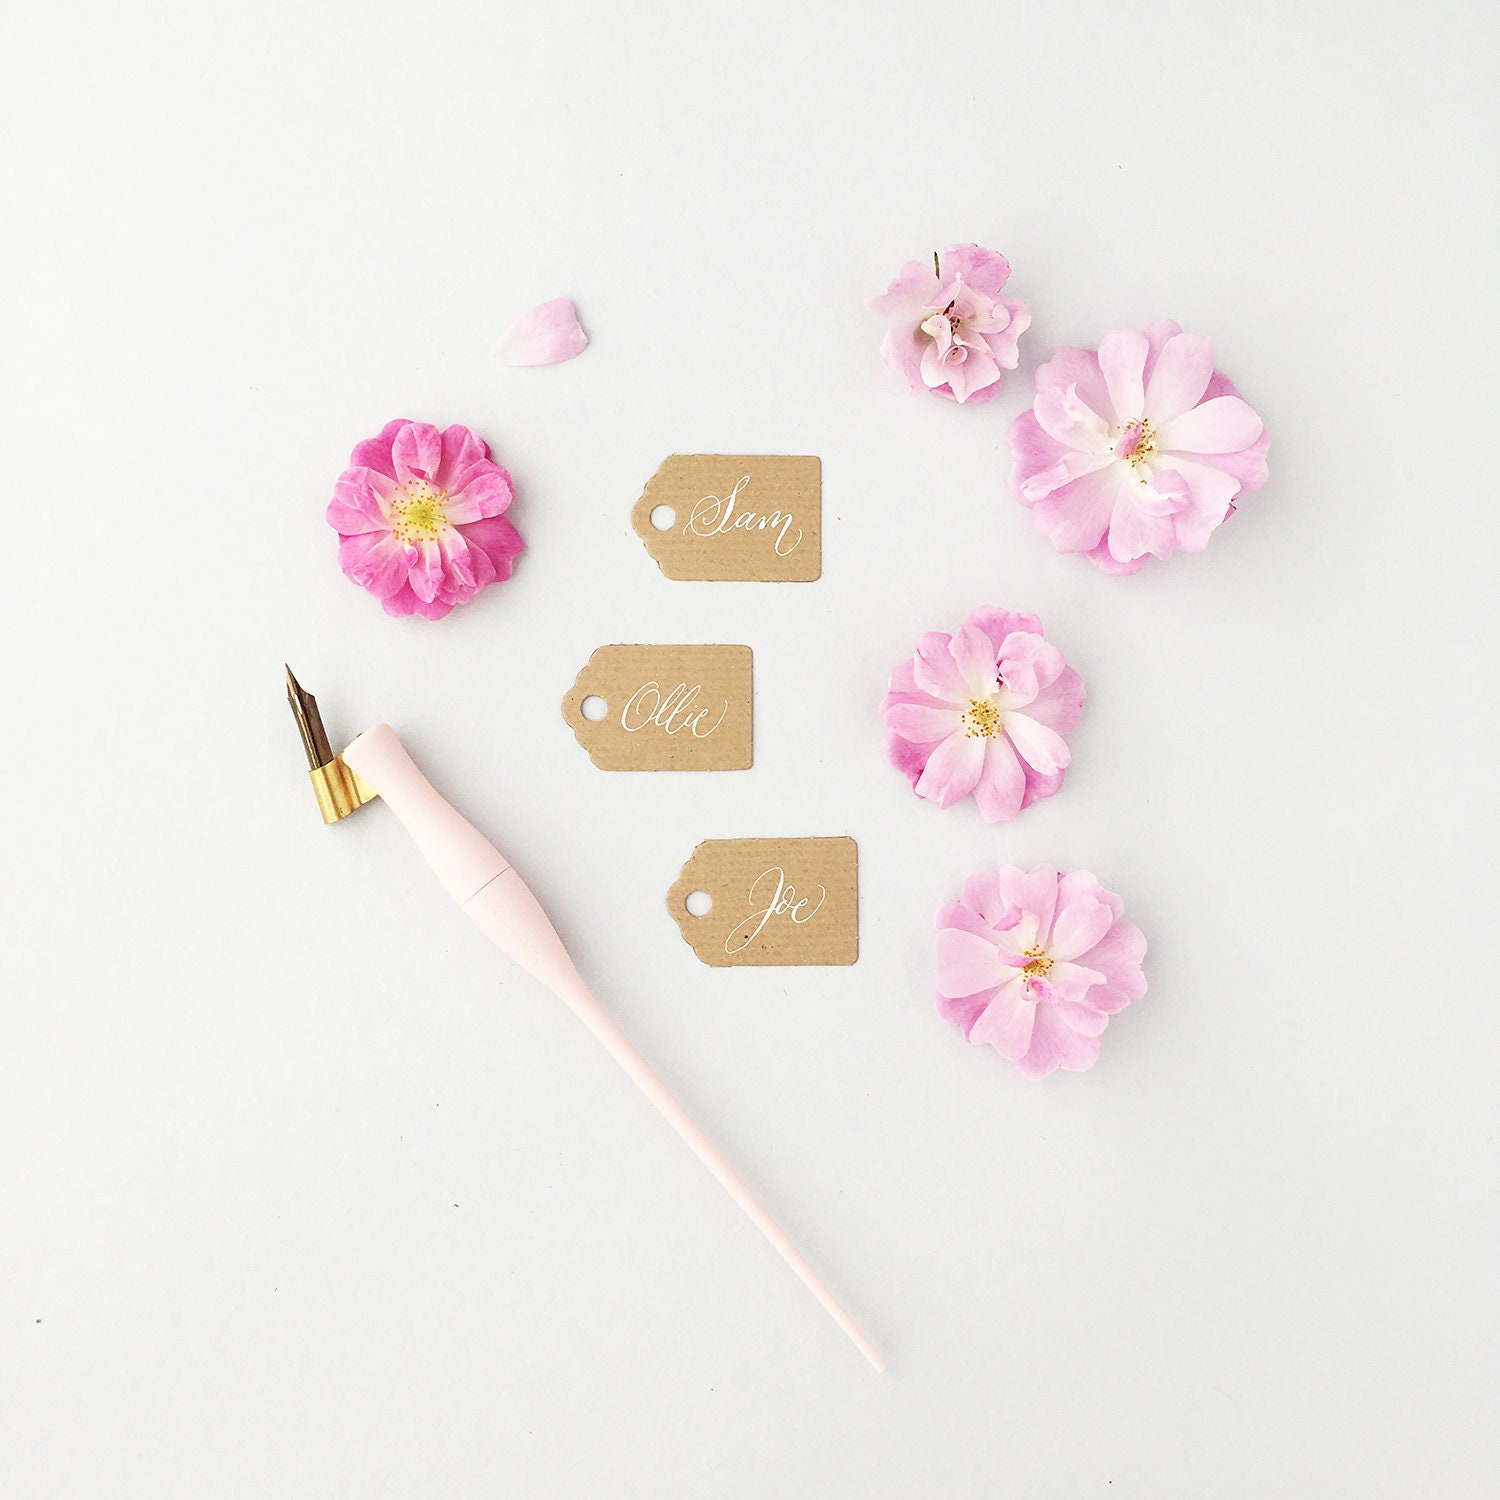 tiny rustic luggage tags with white calligraphy wedding place